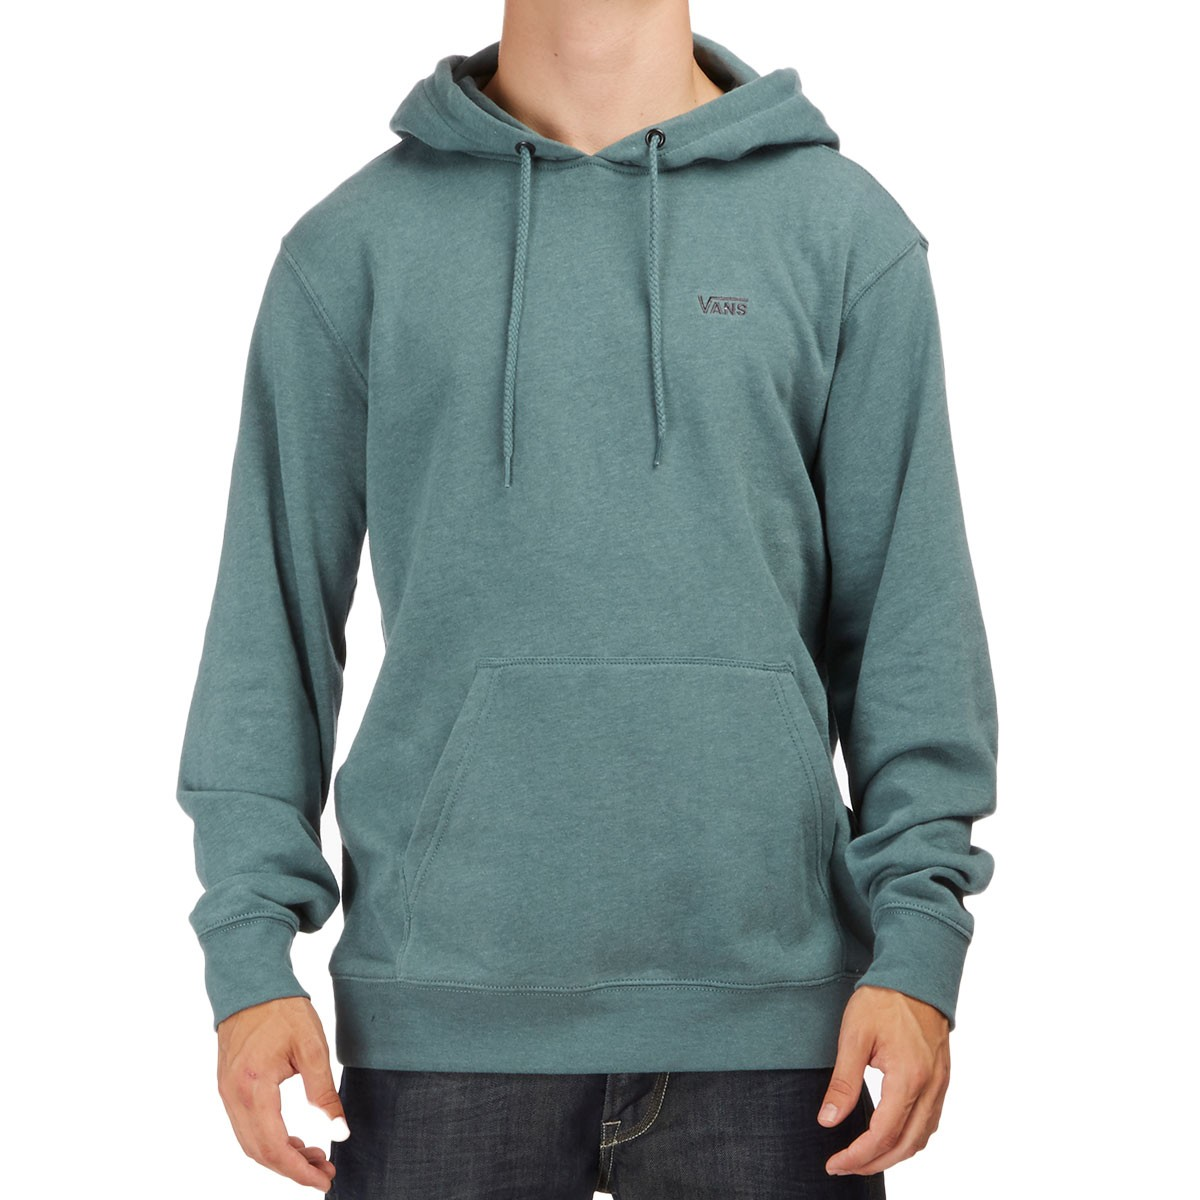 544e8bfc13 Vans Core Basics Pullover IV Hoodie - North Atlantic Heather